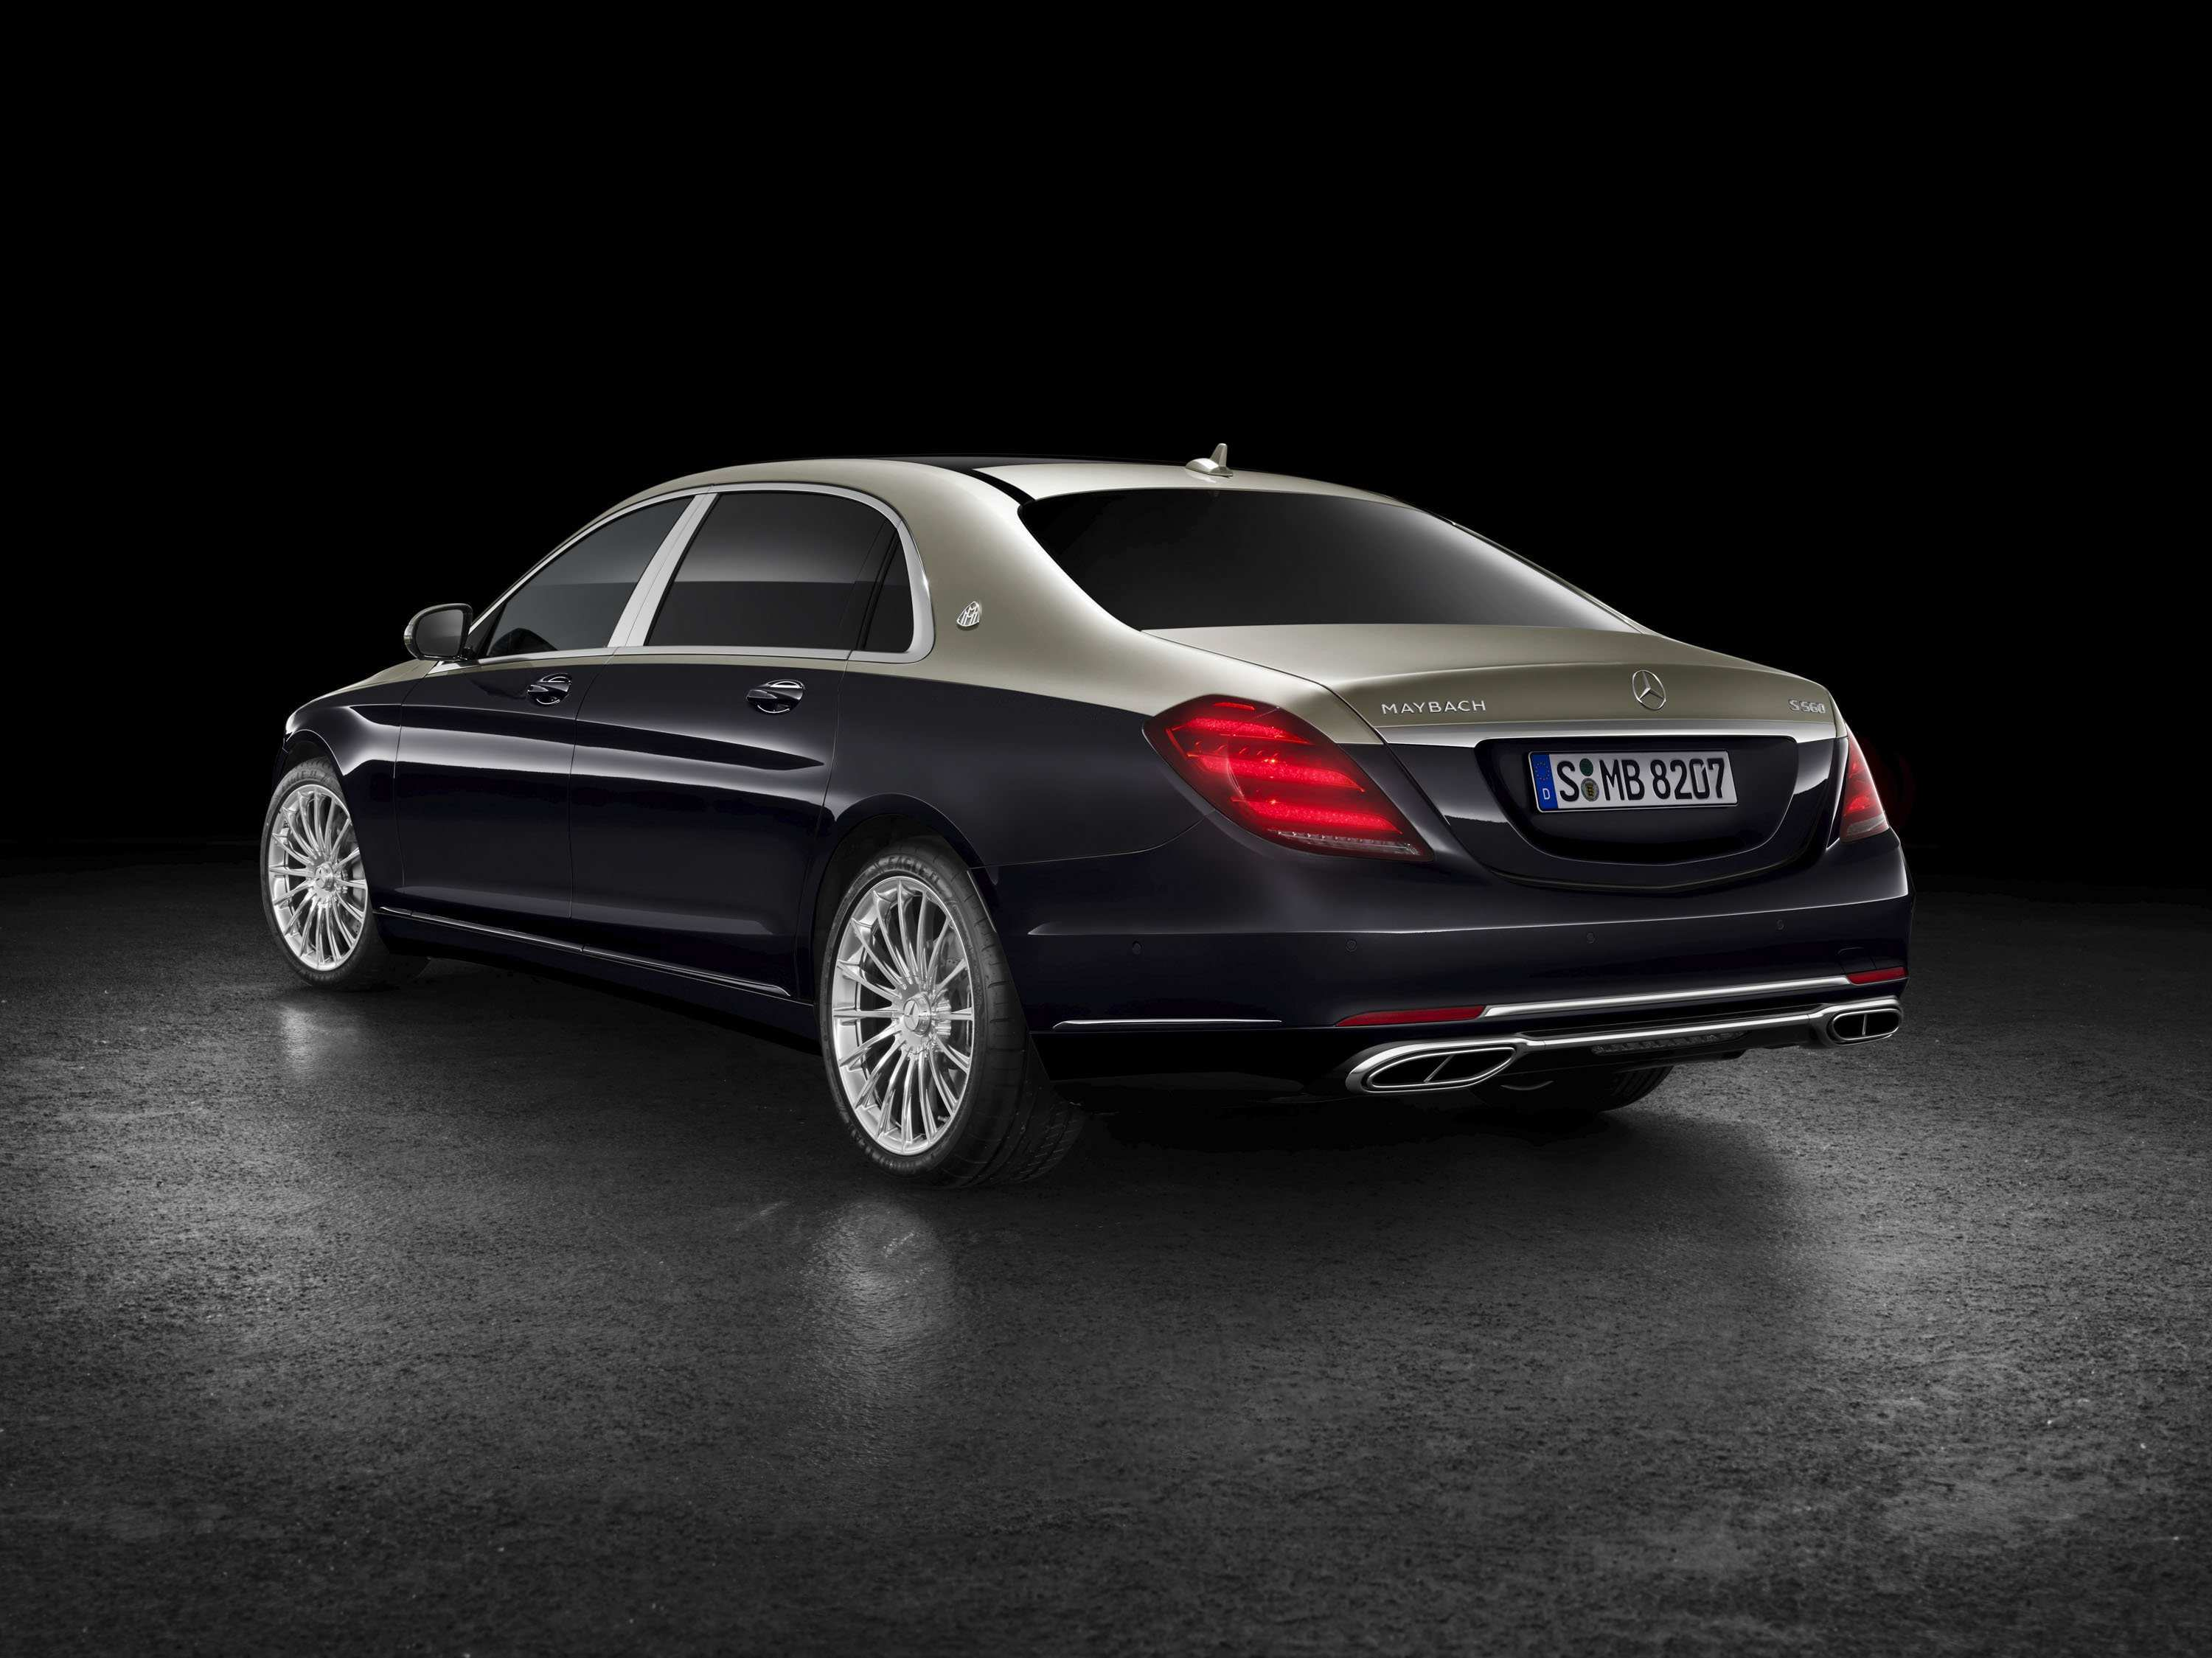 28 New Mercedes S650 Maybach 2019 Exterior And Interior